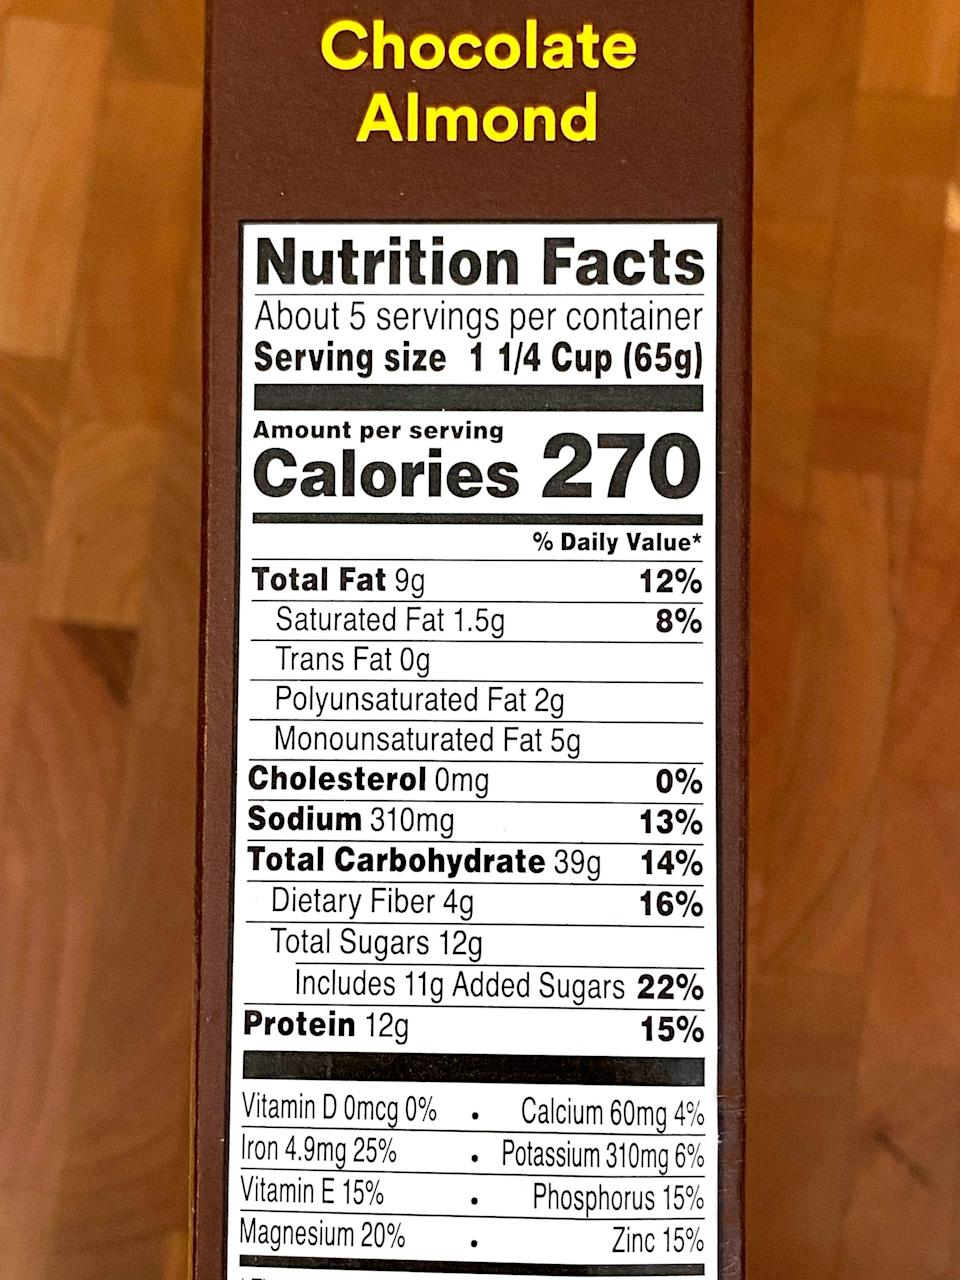 """<p>For a one-and-a-quarter-cup serving of Chocolate Almond RX Cereal, it's 270 calories with nine grams of fat and 1.5 grams of saturated fat. It offers 39 grams of carbs, four grams of fiber, 12 grams of protein, and has just 11 grams of added sugar. </p> <p>If you enjoy your bowl of cereal with one cup of <a href=""""https://silk.com/plant-based-products/soymilk/organic-unsweet-vanilla-soymilk?gclid=Cj0KCQjwpreJBhDvARIsAF1_BU0nyknLgtpqyMhza83oIvp0Xy5qR4HA9Bwm0G7HptWIZbfNBbS9OsUaAvhhEALw_wcB&amp;gclsrc=aw.ds"""" class=""""link rapid-noclick-resp"""" rel=""""nofollow noopener"""" target=""""_blank"""" data-ylk=""""slk:unsweetened soy milk"""">unsweetened soy milk</a>, it adds another 80 calories, four grams of fat, .5 grams of saturated fat, four grams of carbs, two grams of fiber, seven grams of protein, and has no added sugar.</p> <p>For fewer calories, you can enjoy your bowl with <a href=""""https://www.amazon.com/Almond-Almondmilk-Unsweetened-Vanilla-32-Ounce/dp/B002H062DA"""" class=""""link rapid-noclick-resp"""" rel=""""nofollow noopener"""" target=""""_blank"""" data-ylk=""""slk:unsweetened vanilla almond milk"""">unsweetened vanilla almond milk</a>. It adds 30 calories, 2.5 grams of fat, no saturated fat, one gram of carb, less than one gram of fiber, one gram of protein, and has no added sugar.</p>"""